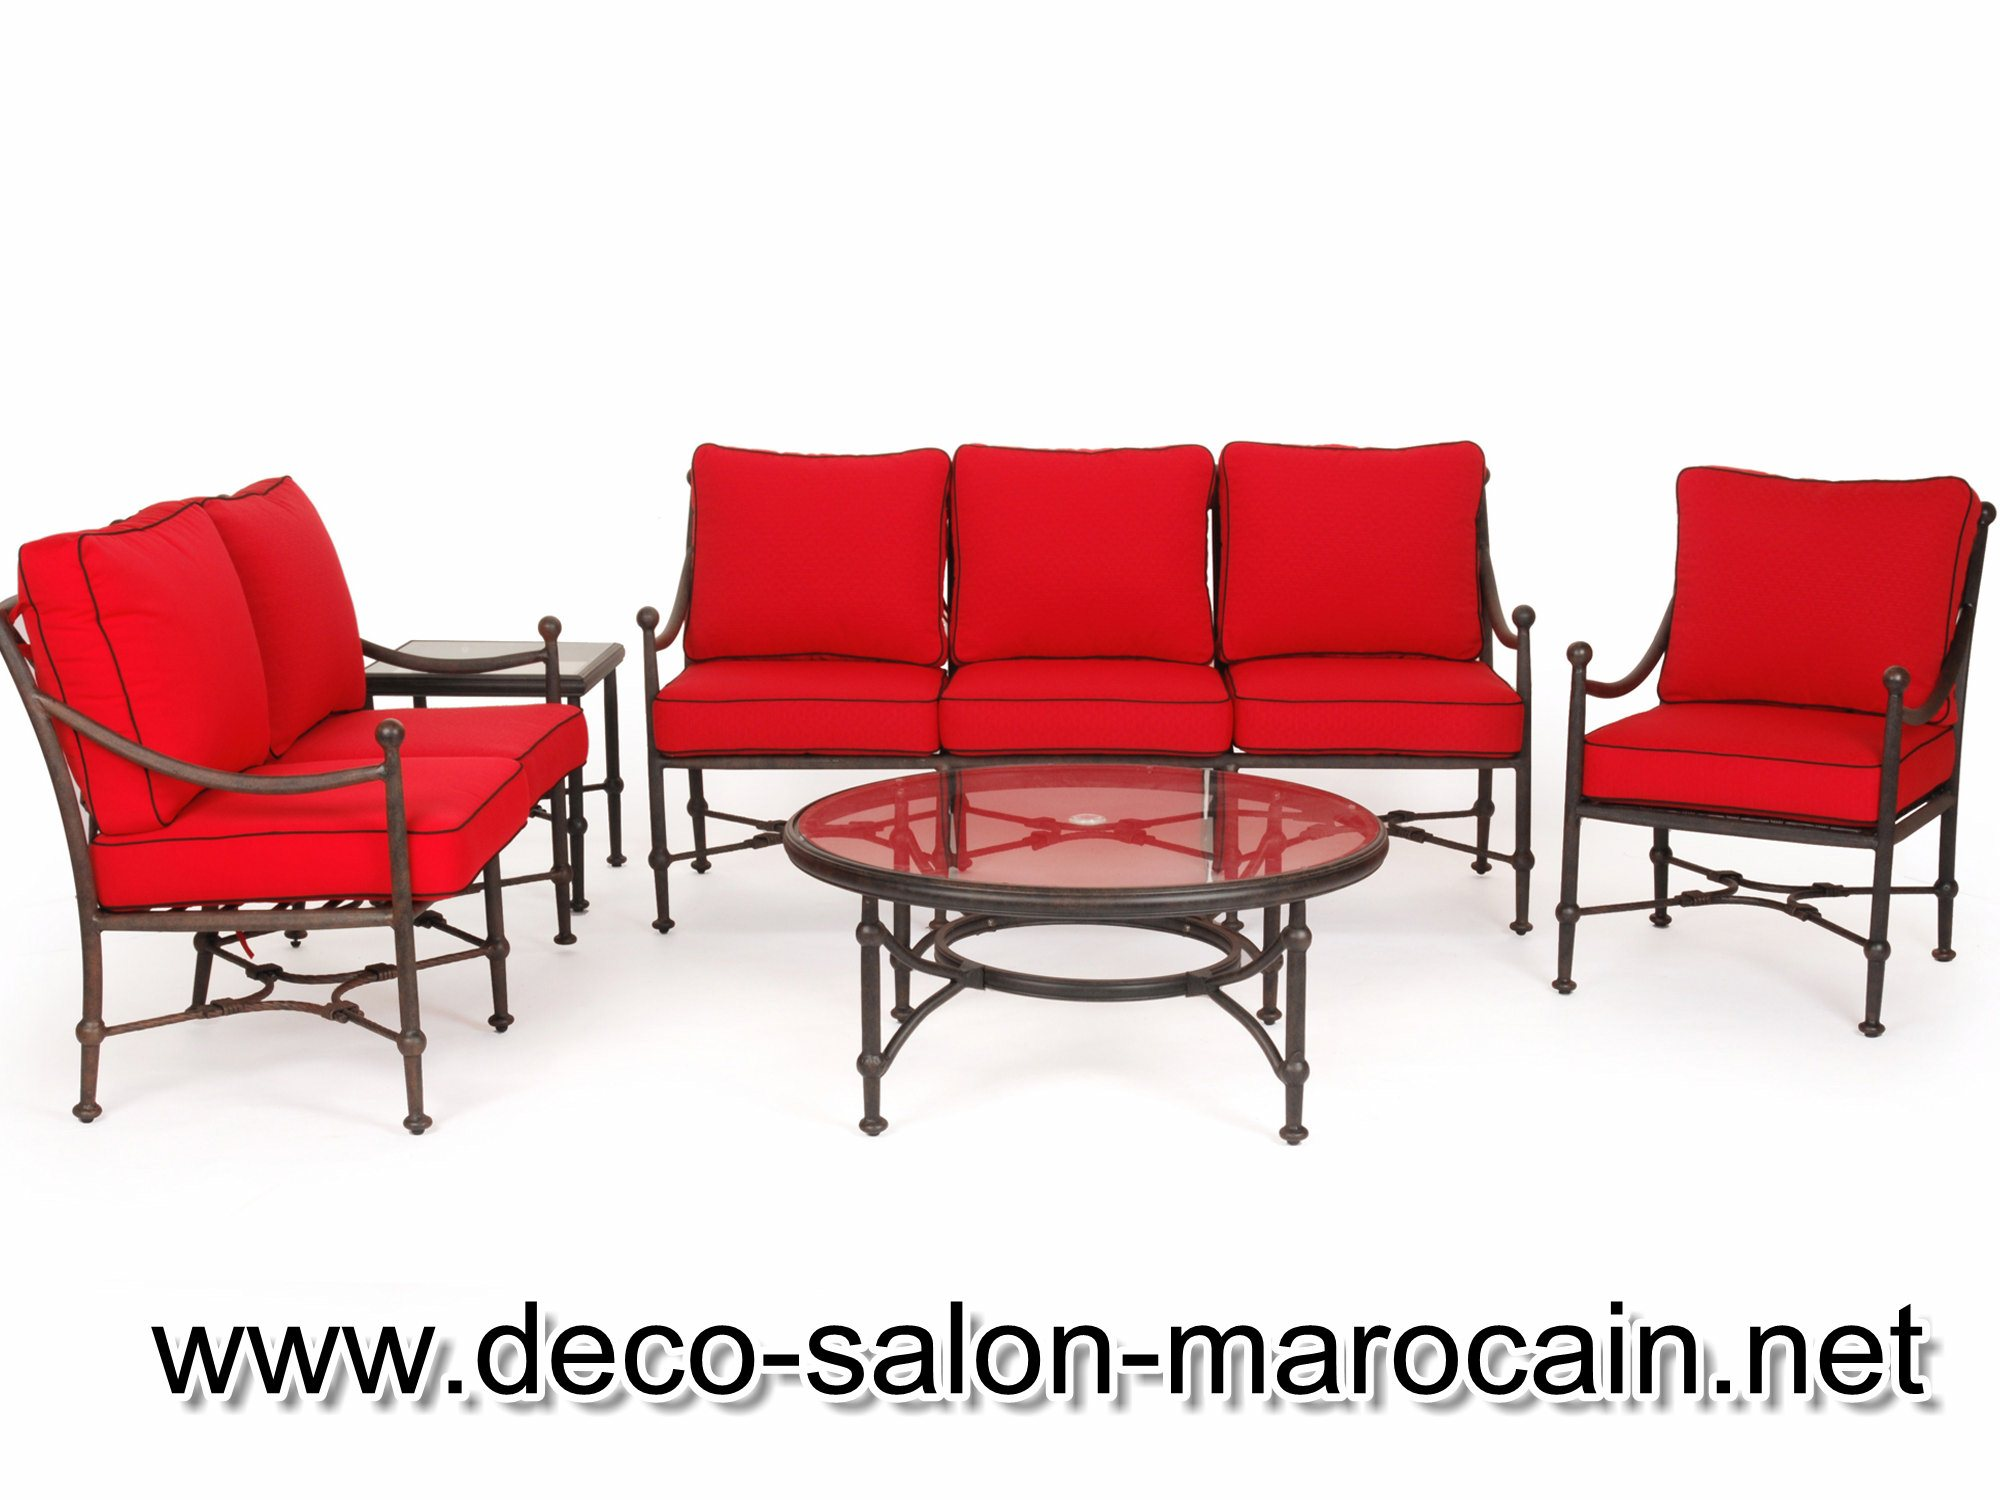 mod les de salons marocains en fer forg d co salon marocain. Black Bedroom Furniture Sets. Home Design Ideas